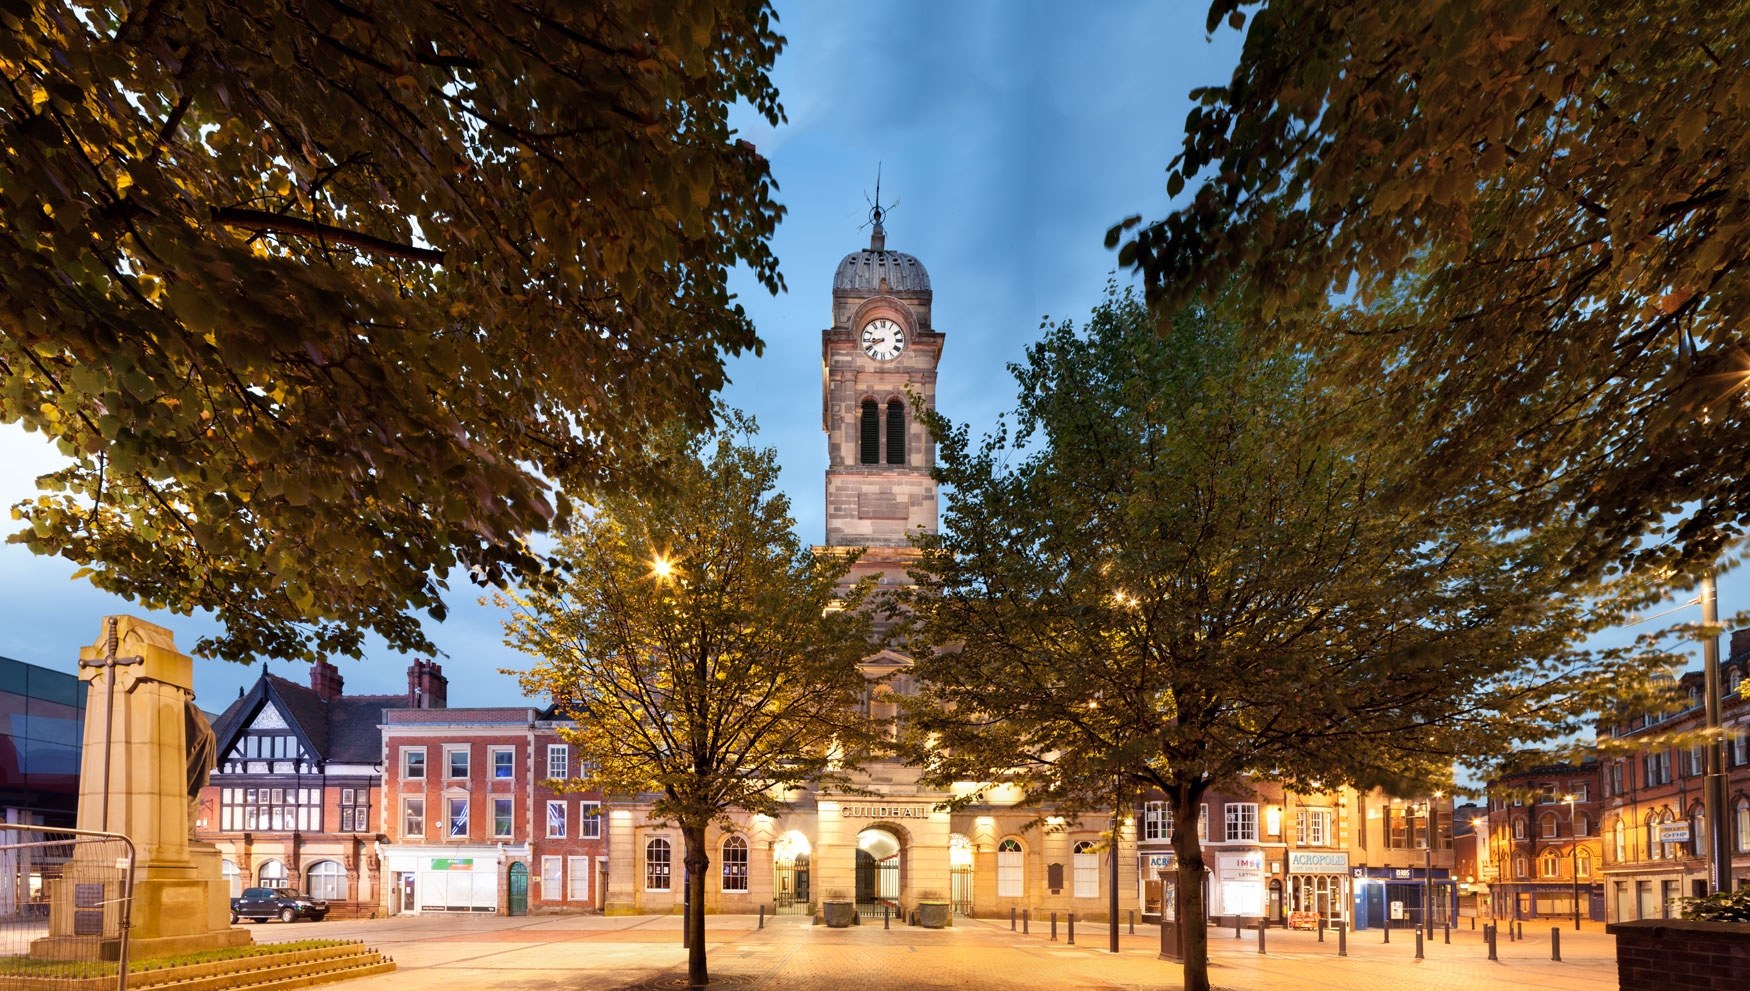 Derbys Guild Hall as dusk taken from behind trees for places marketing purposes